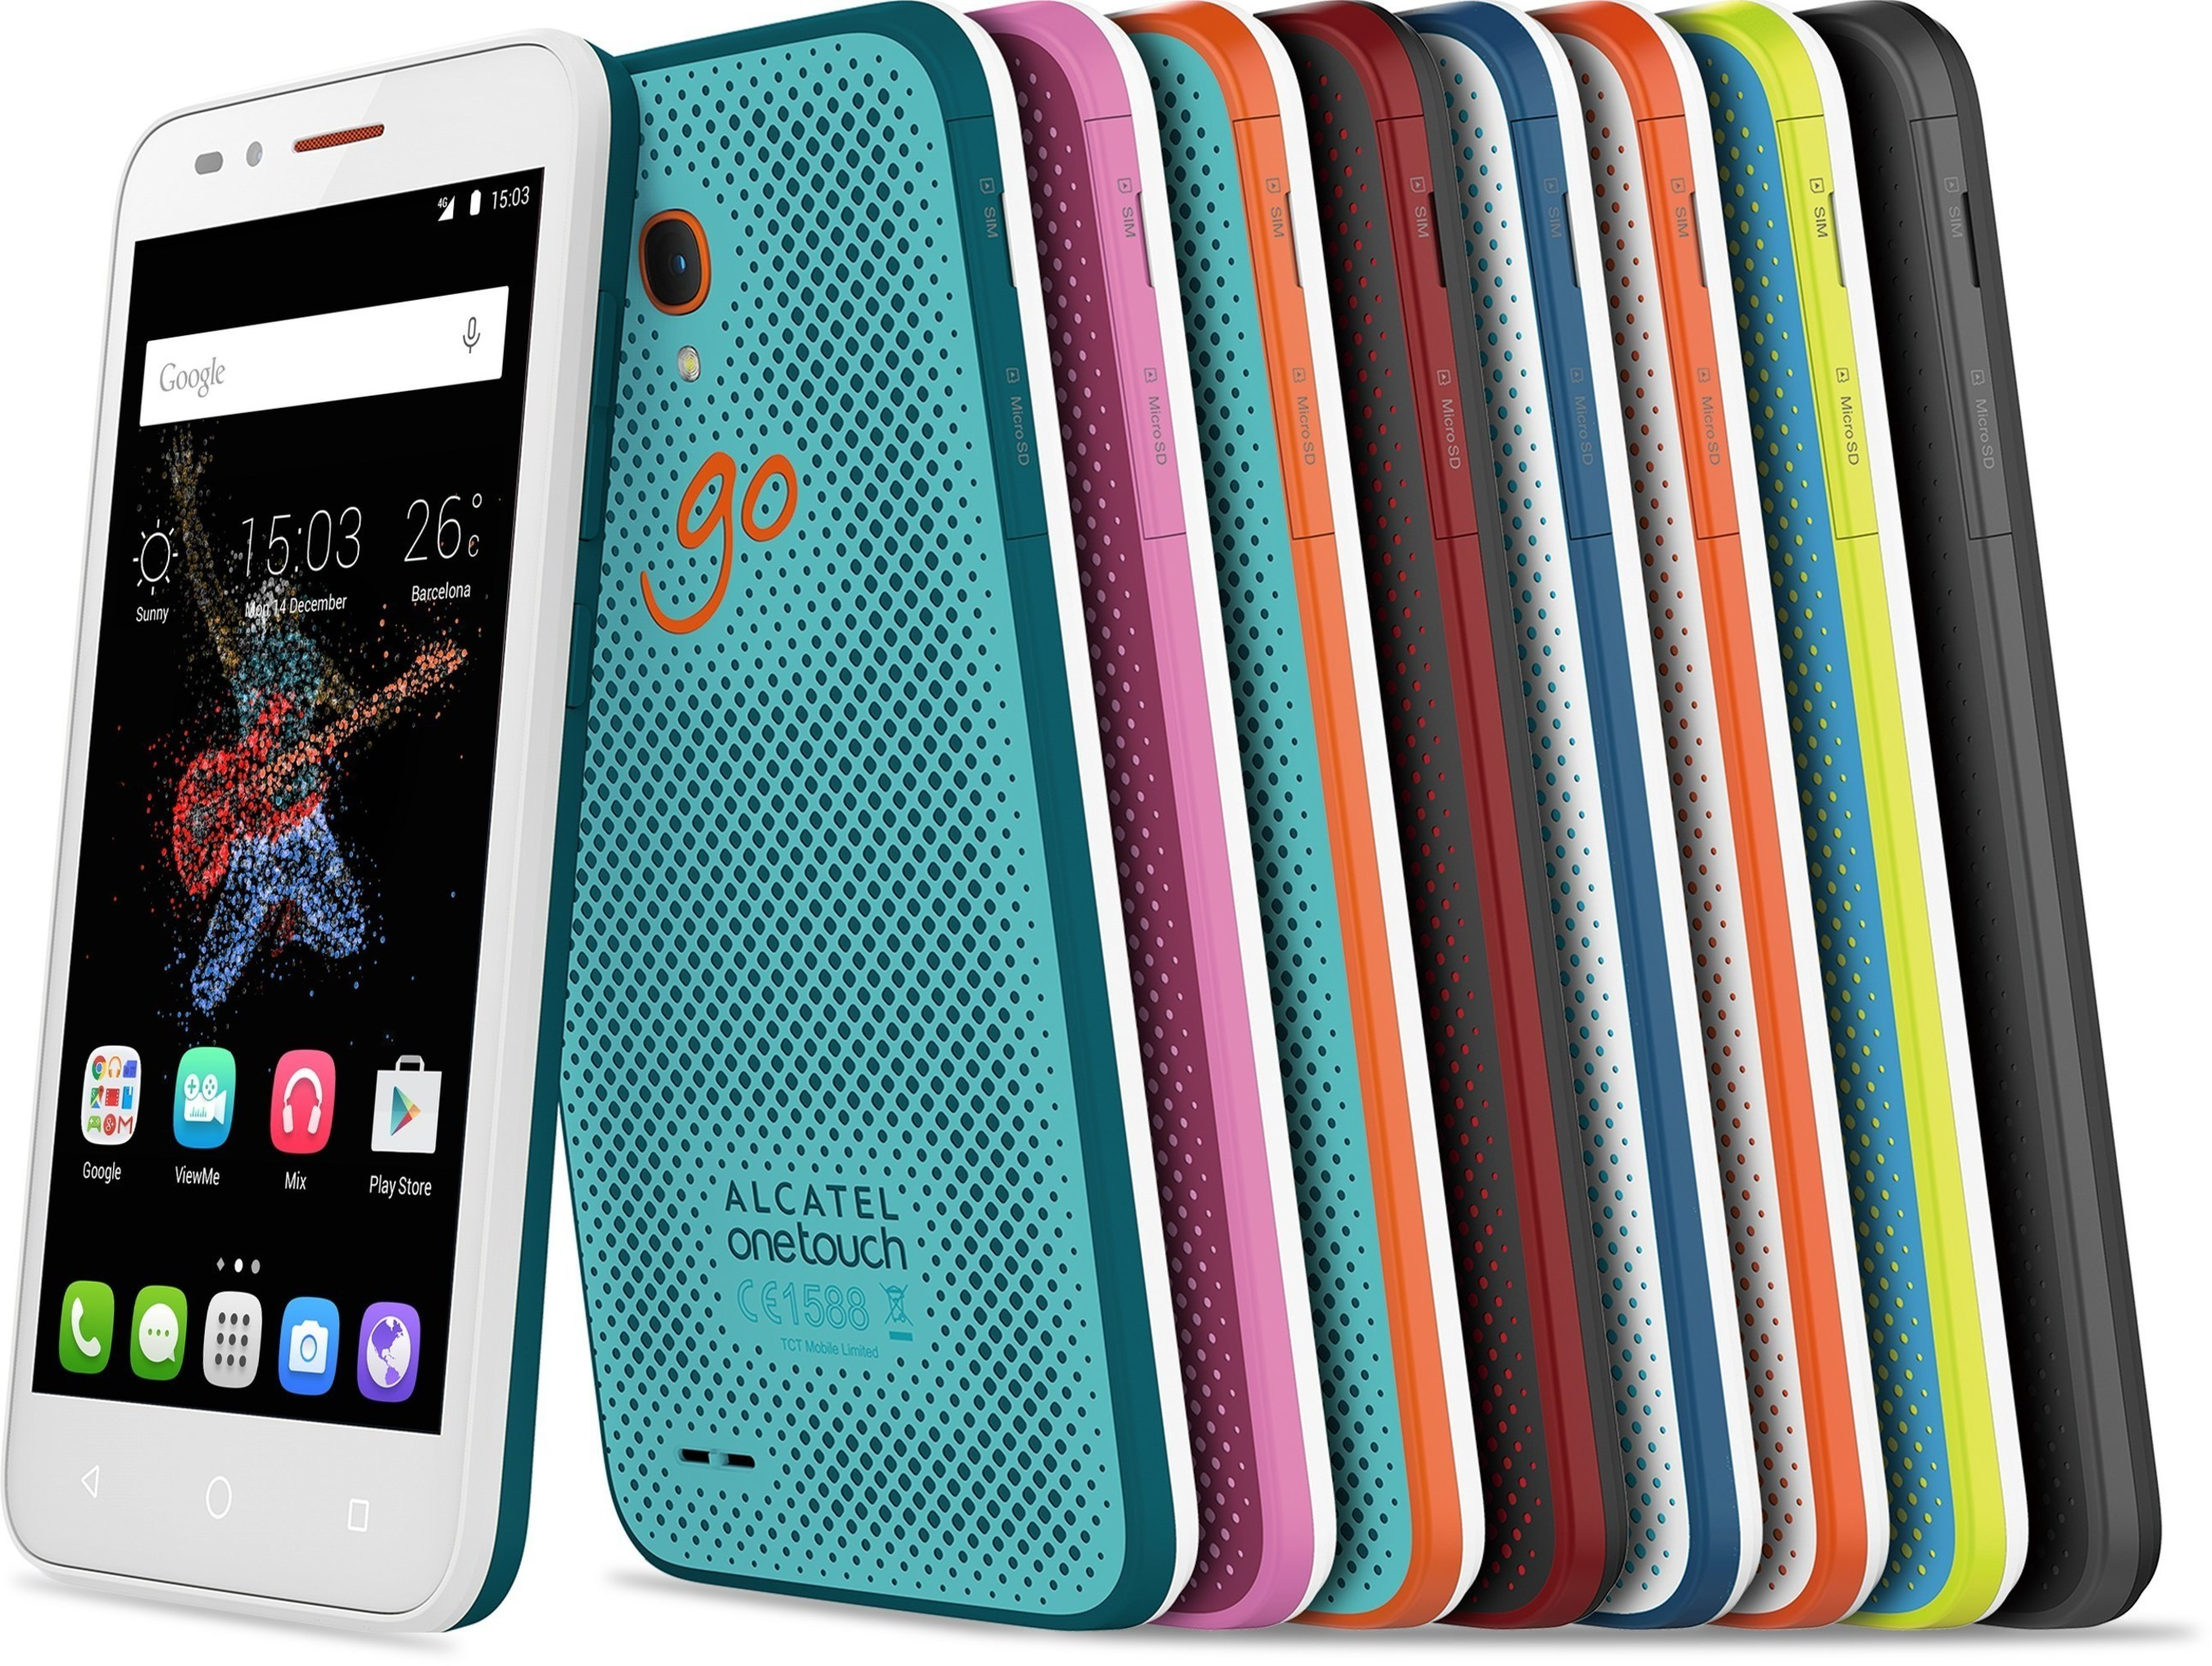 ALCATEL ONETOUCH Introduces the Brand New GO Family